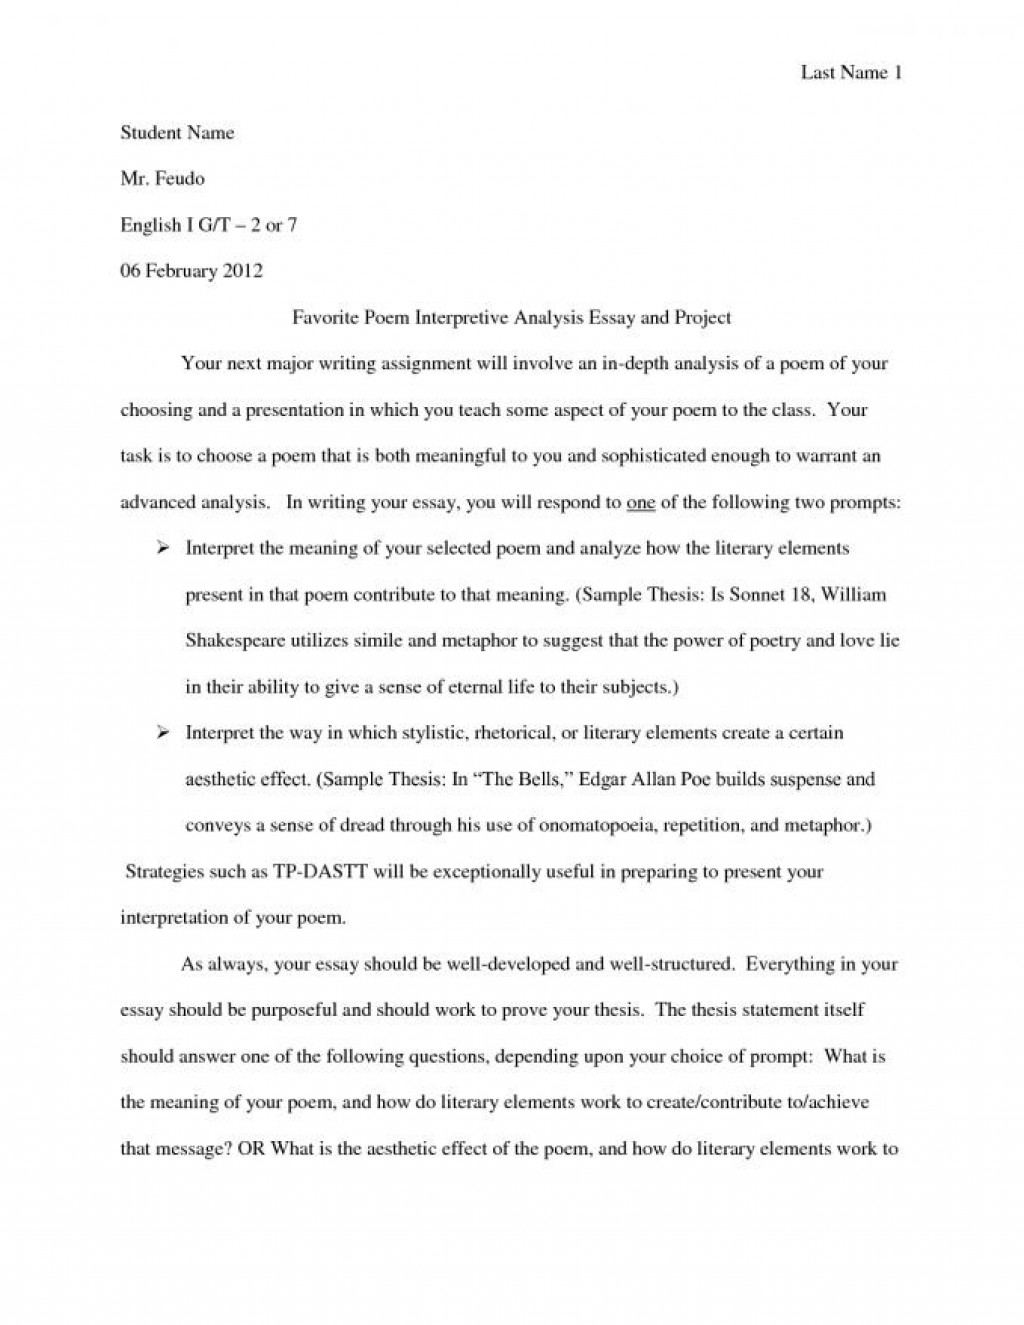 001 Definition Resume Essay Example Poem Formidable Critique Analysis Introduction Outline Template Large